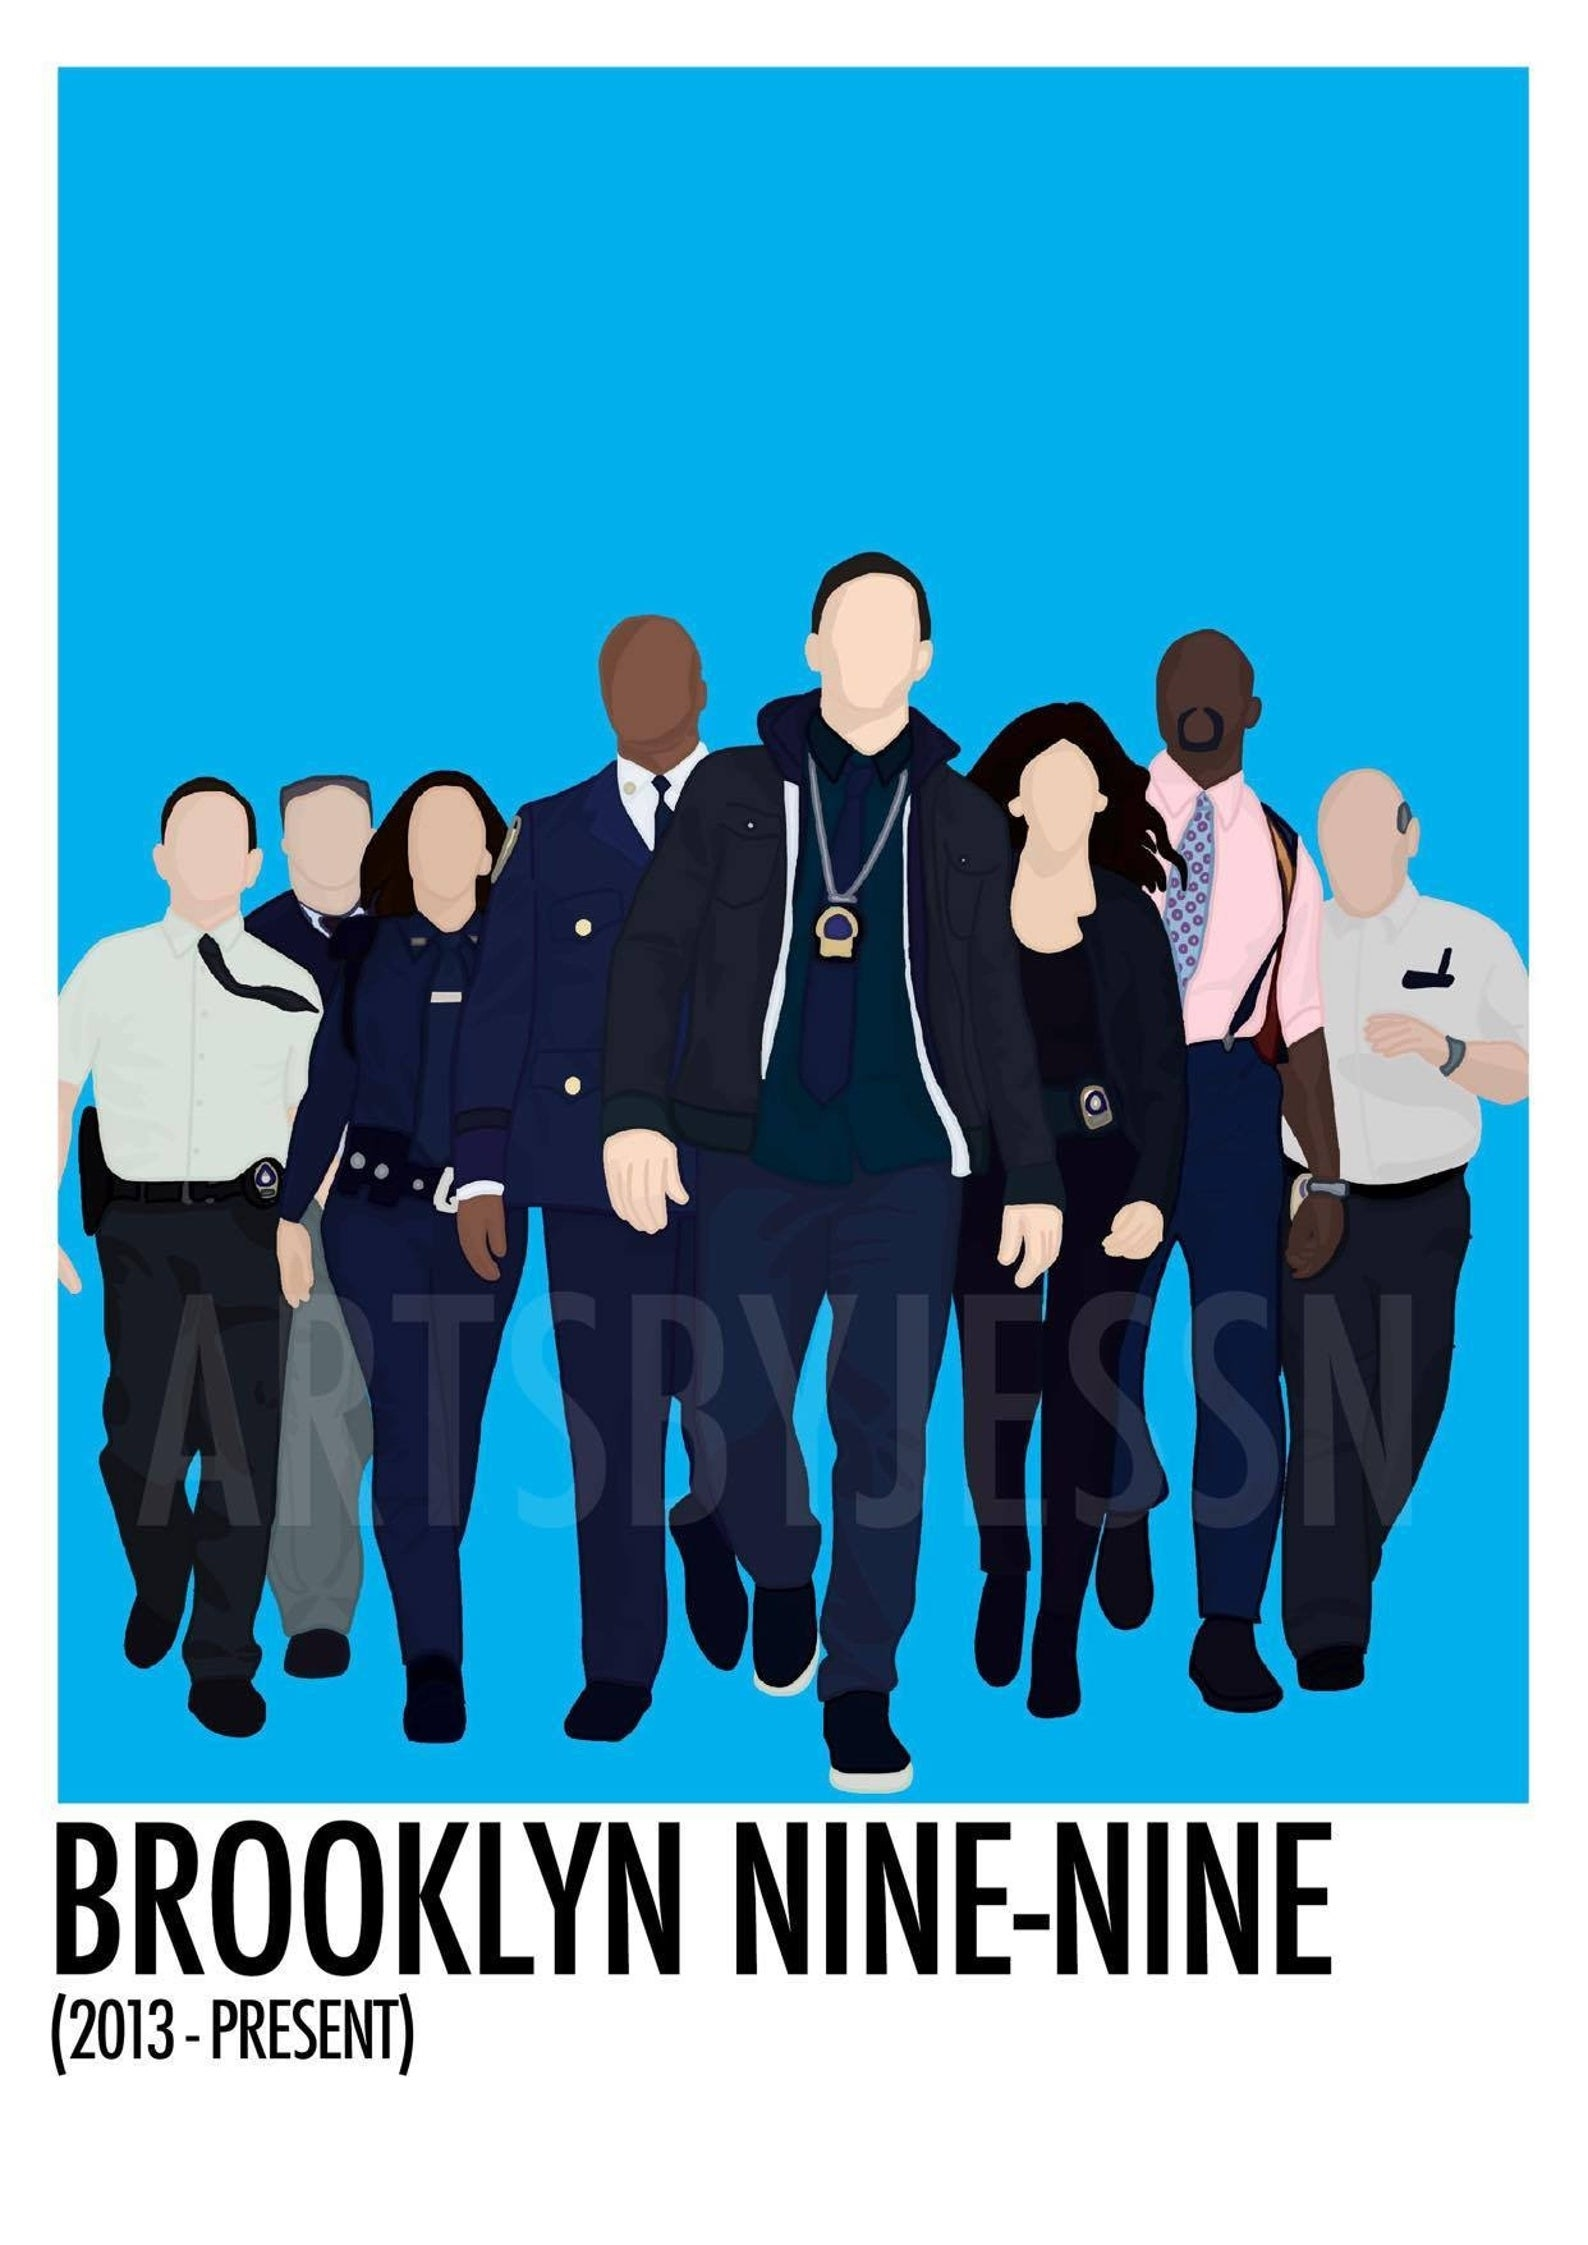 A minimalist drawing of Boyle, Scully, Amy, Holt, Jake, Rosa, Terry, and Hitchcock